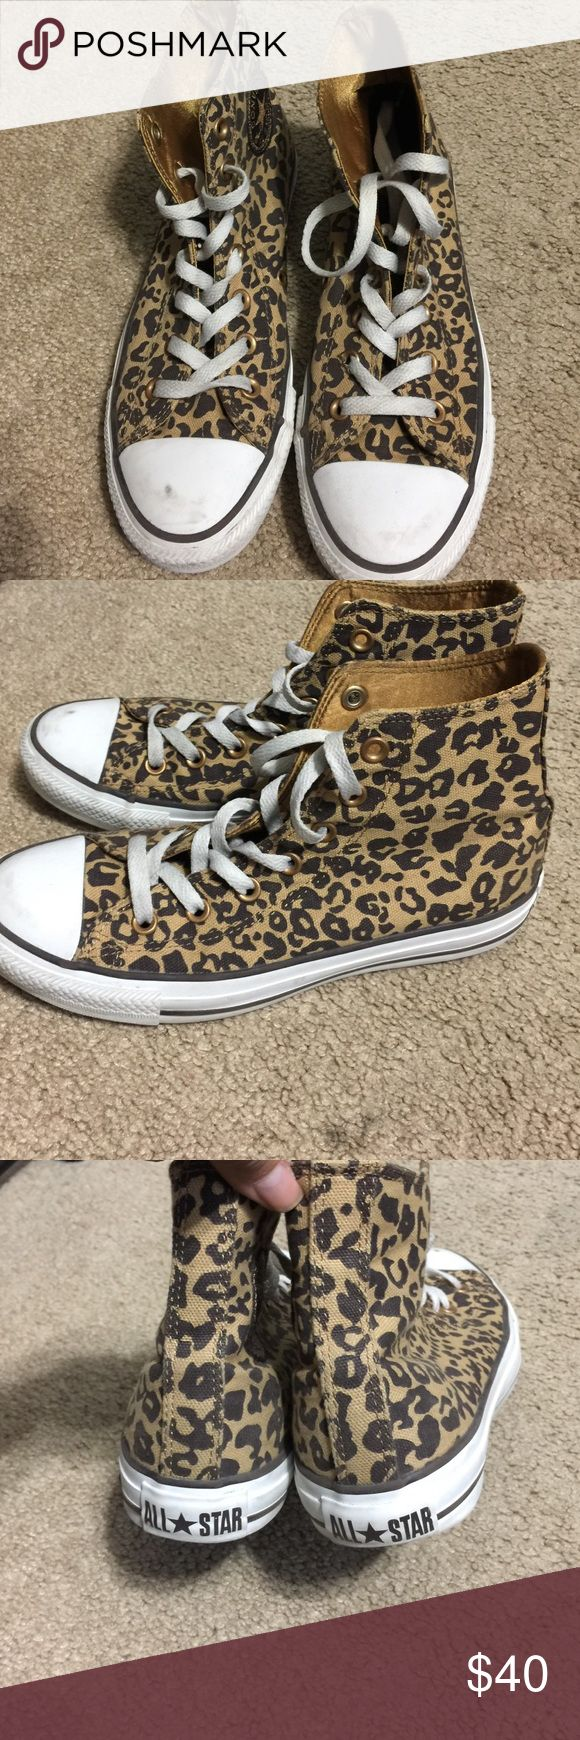 Leopard converse hightops Gently used in pretty good condition. Sizing does run bigger Converse Shoes Athletic Shoes